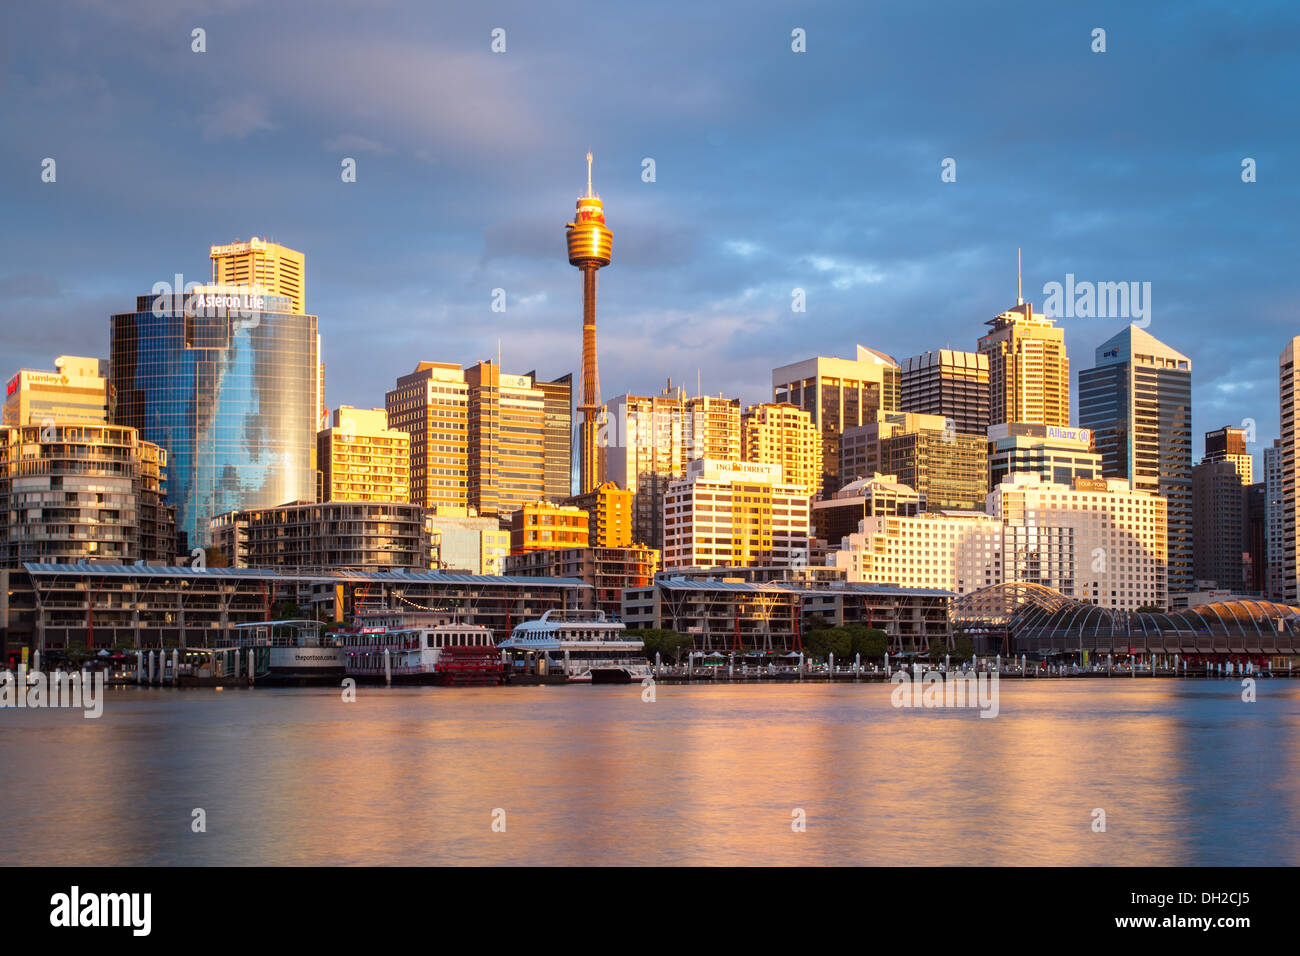 The view towards Sydney CBD and King St Wharf from Darling Harbour on a warm spring evening - Stock Image